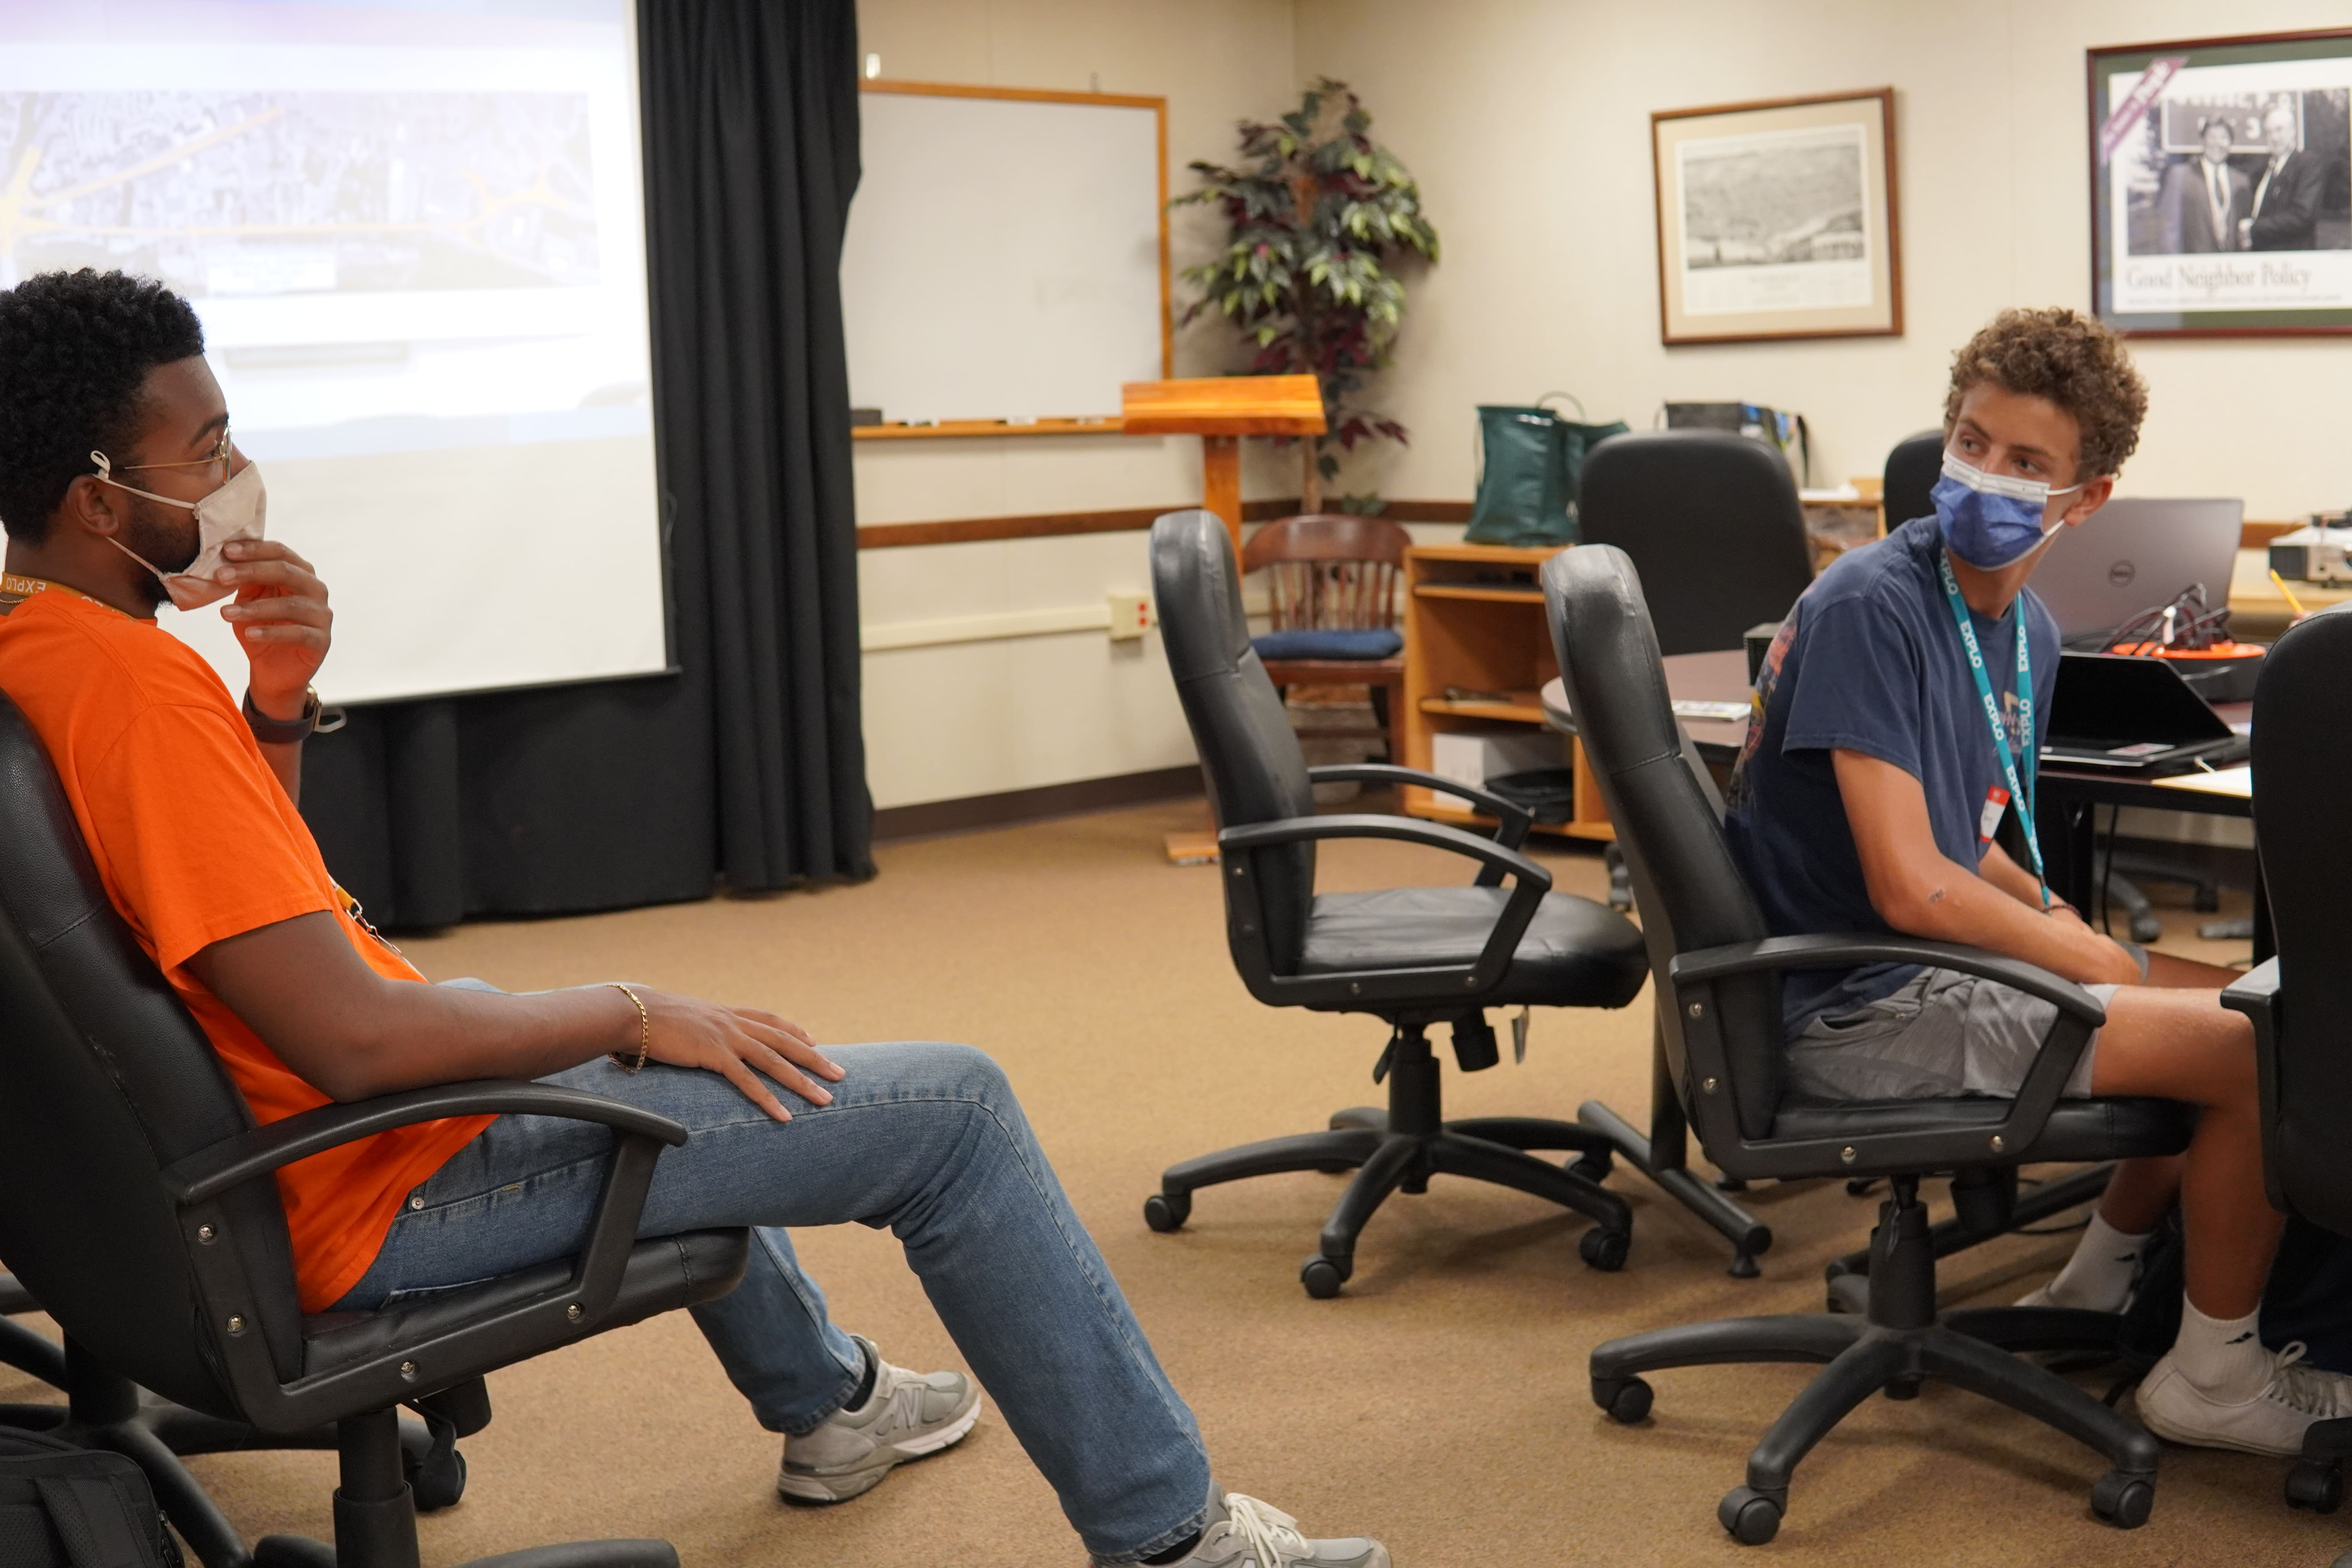 Teaching Fellow Justin and a student speak in a conference room before their meeting begins.